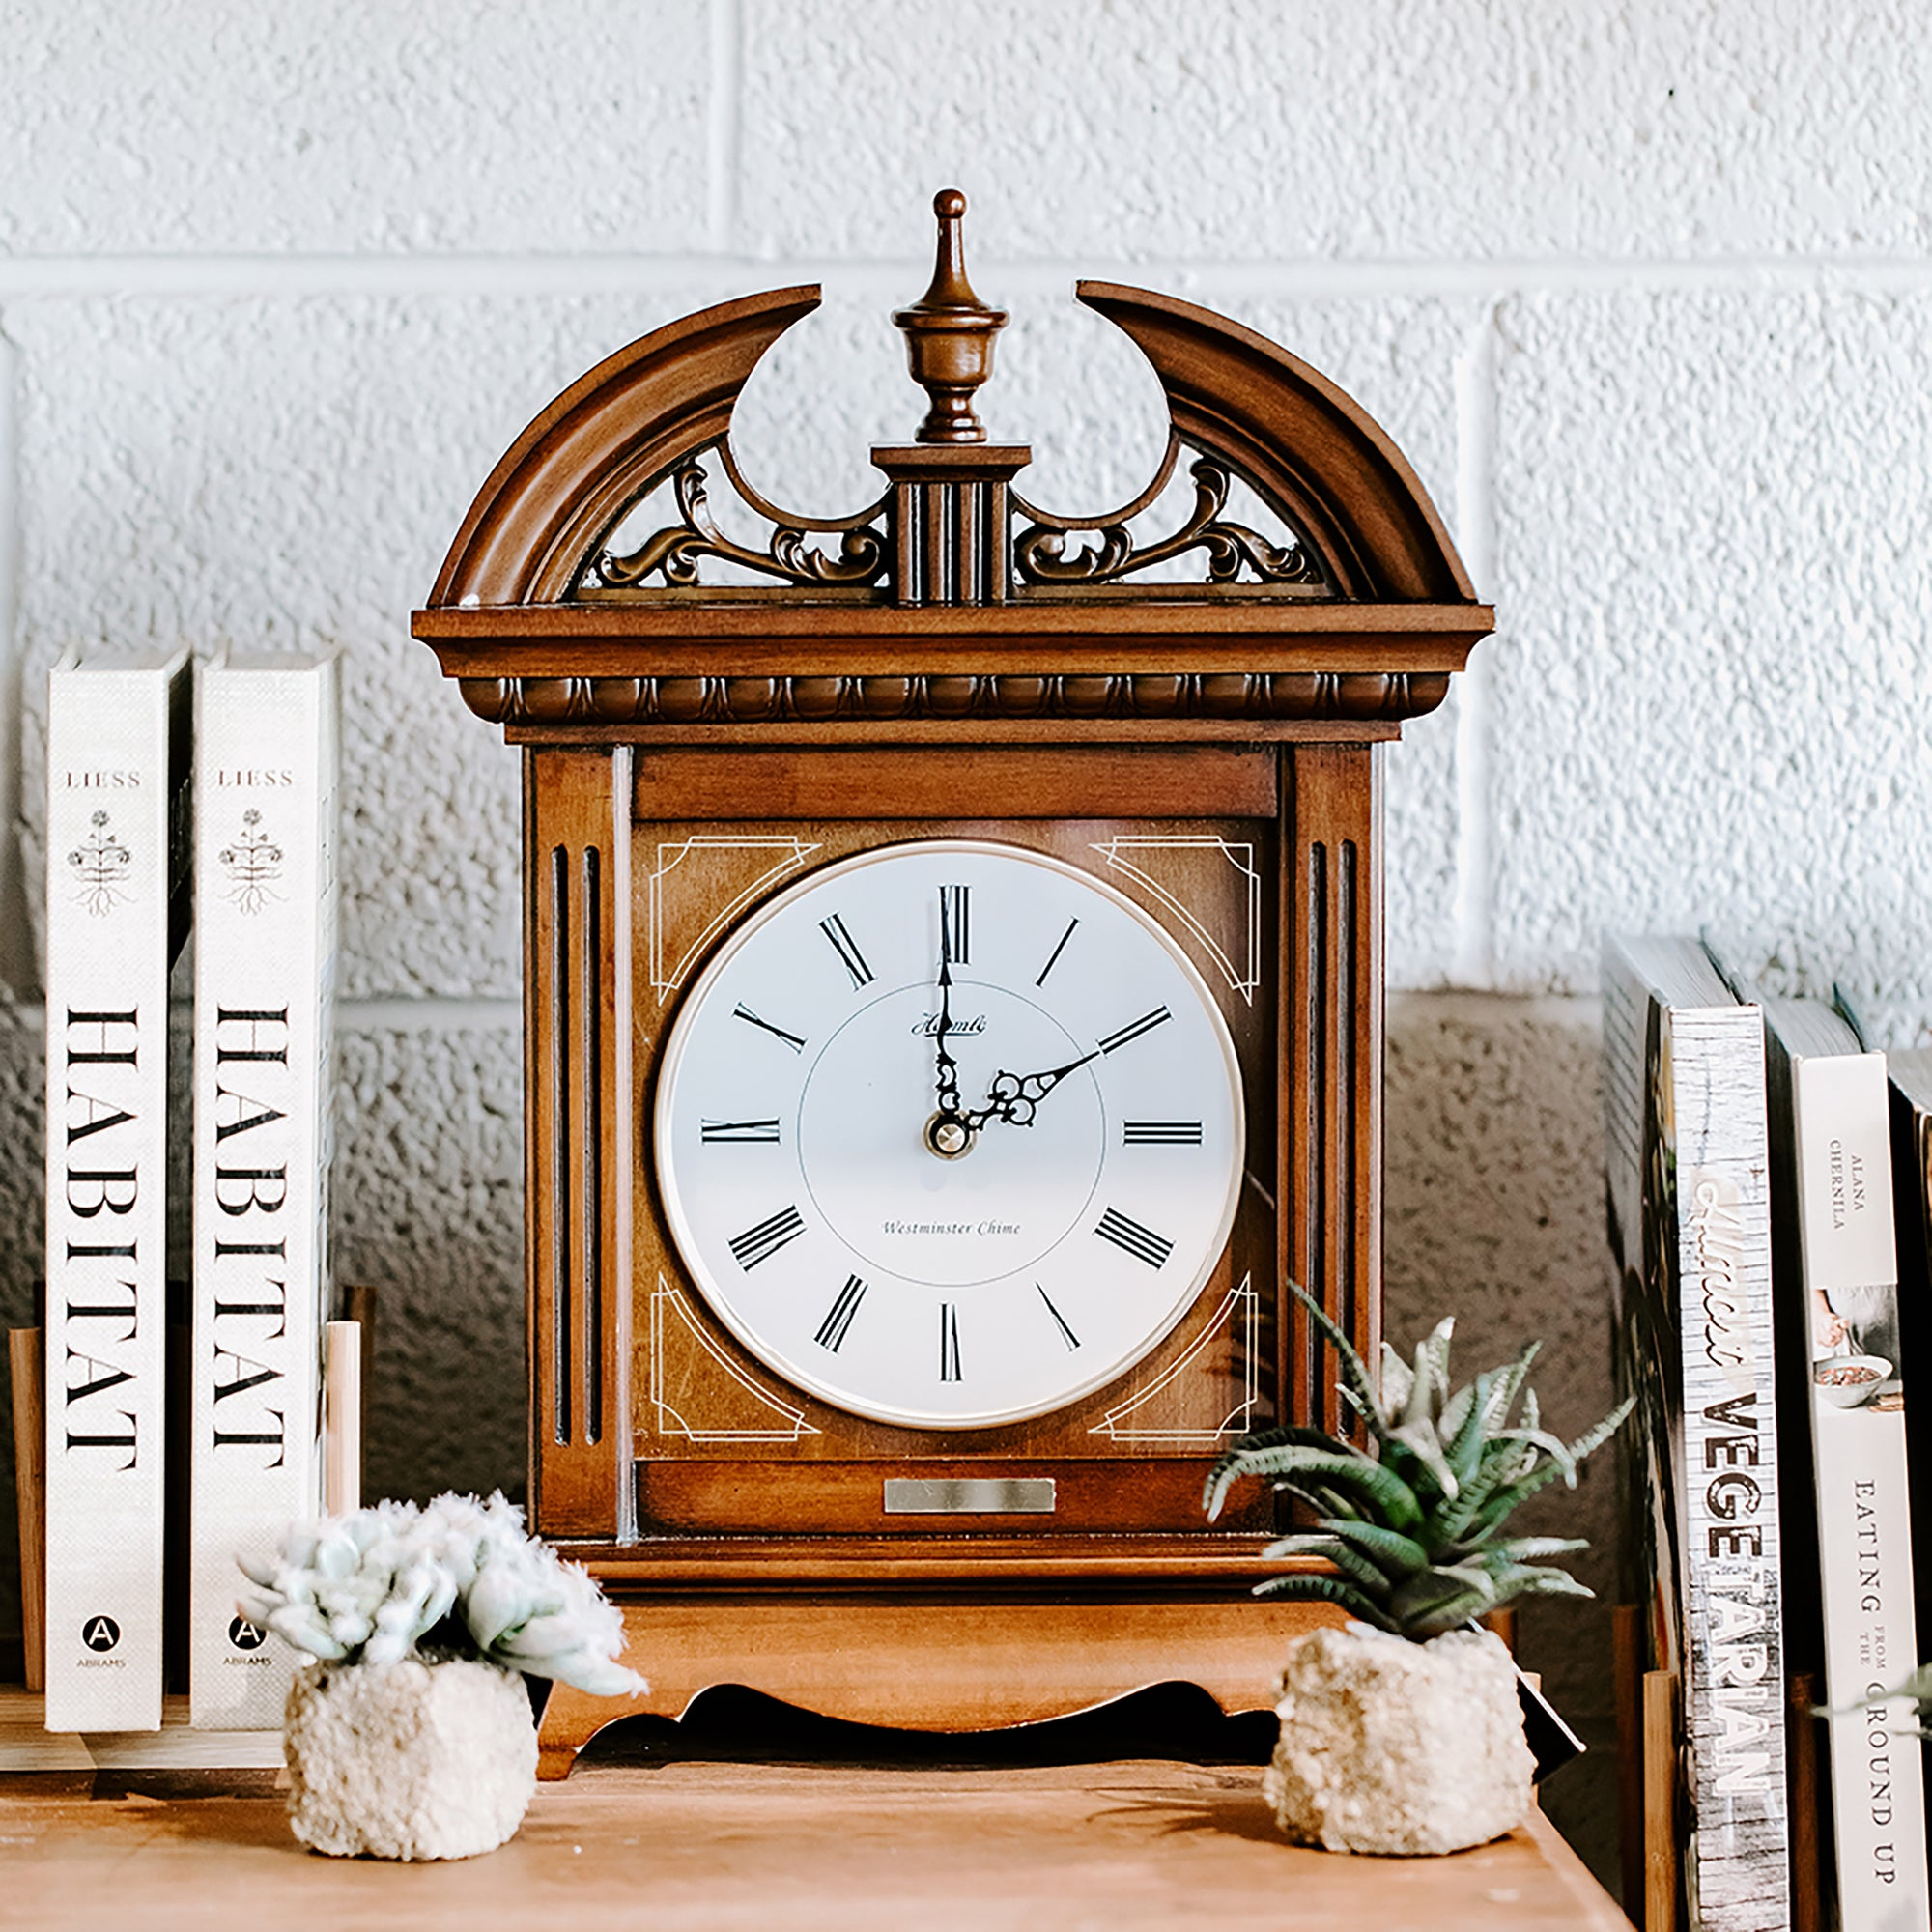 How to Change The Time on Your Old Clock - Without Messing It Up!